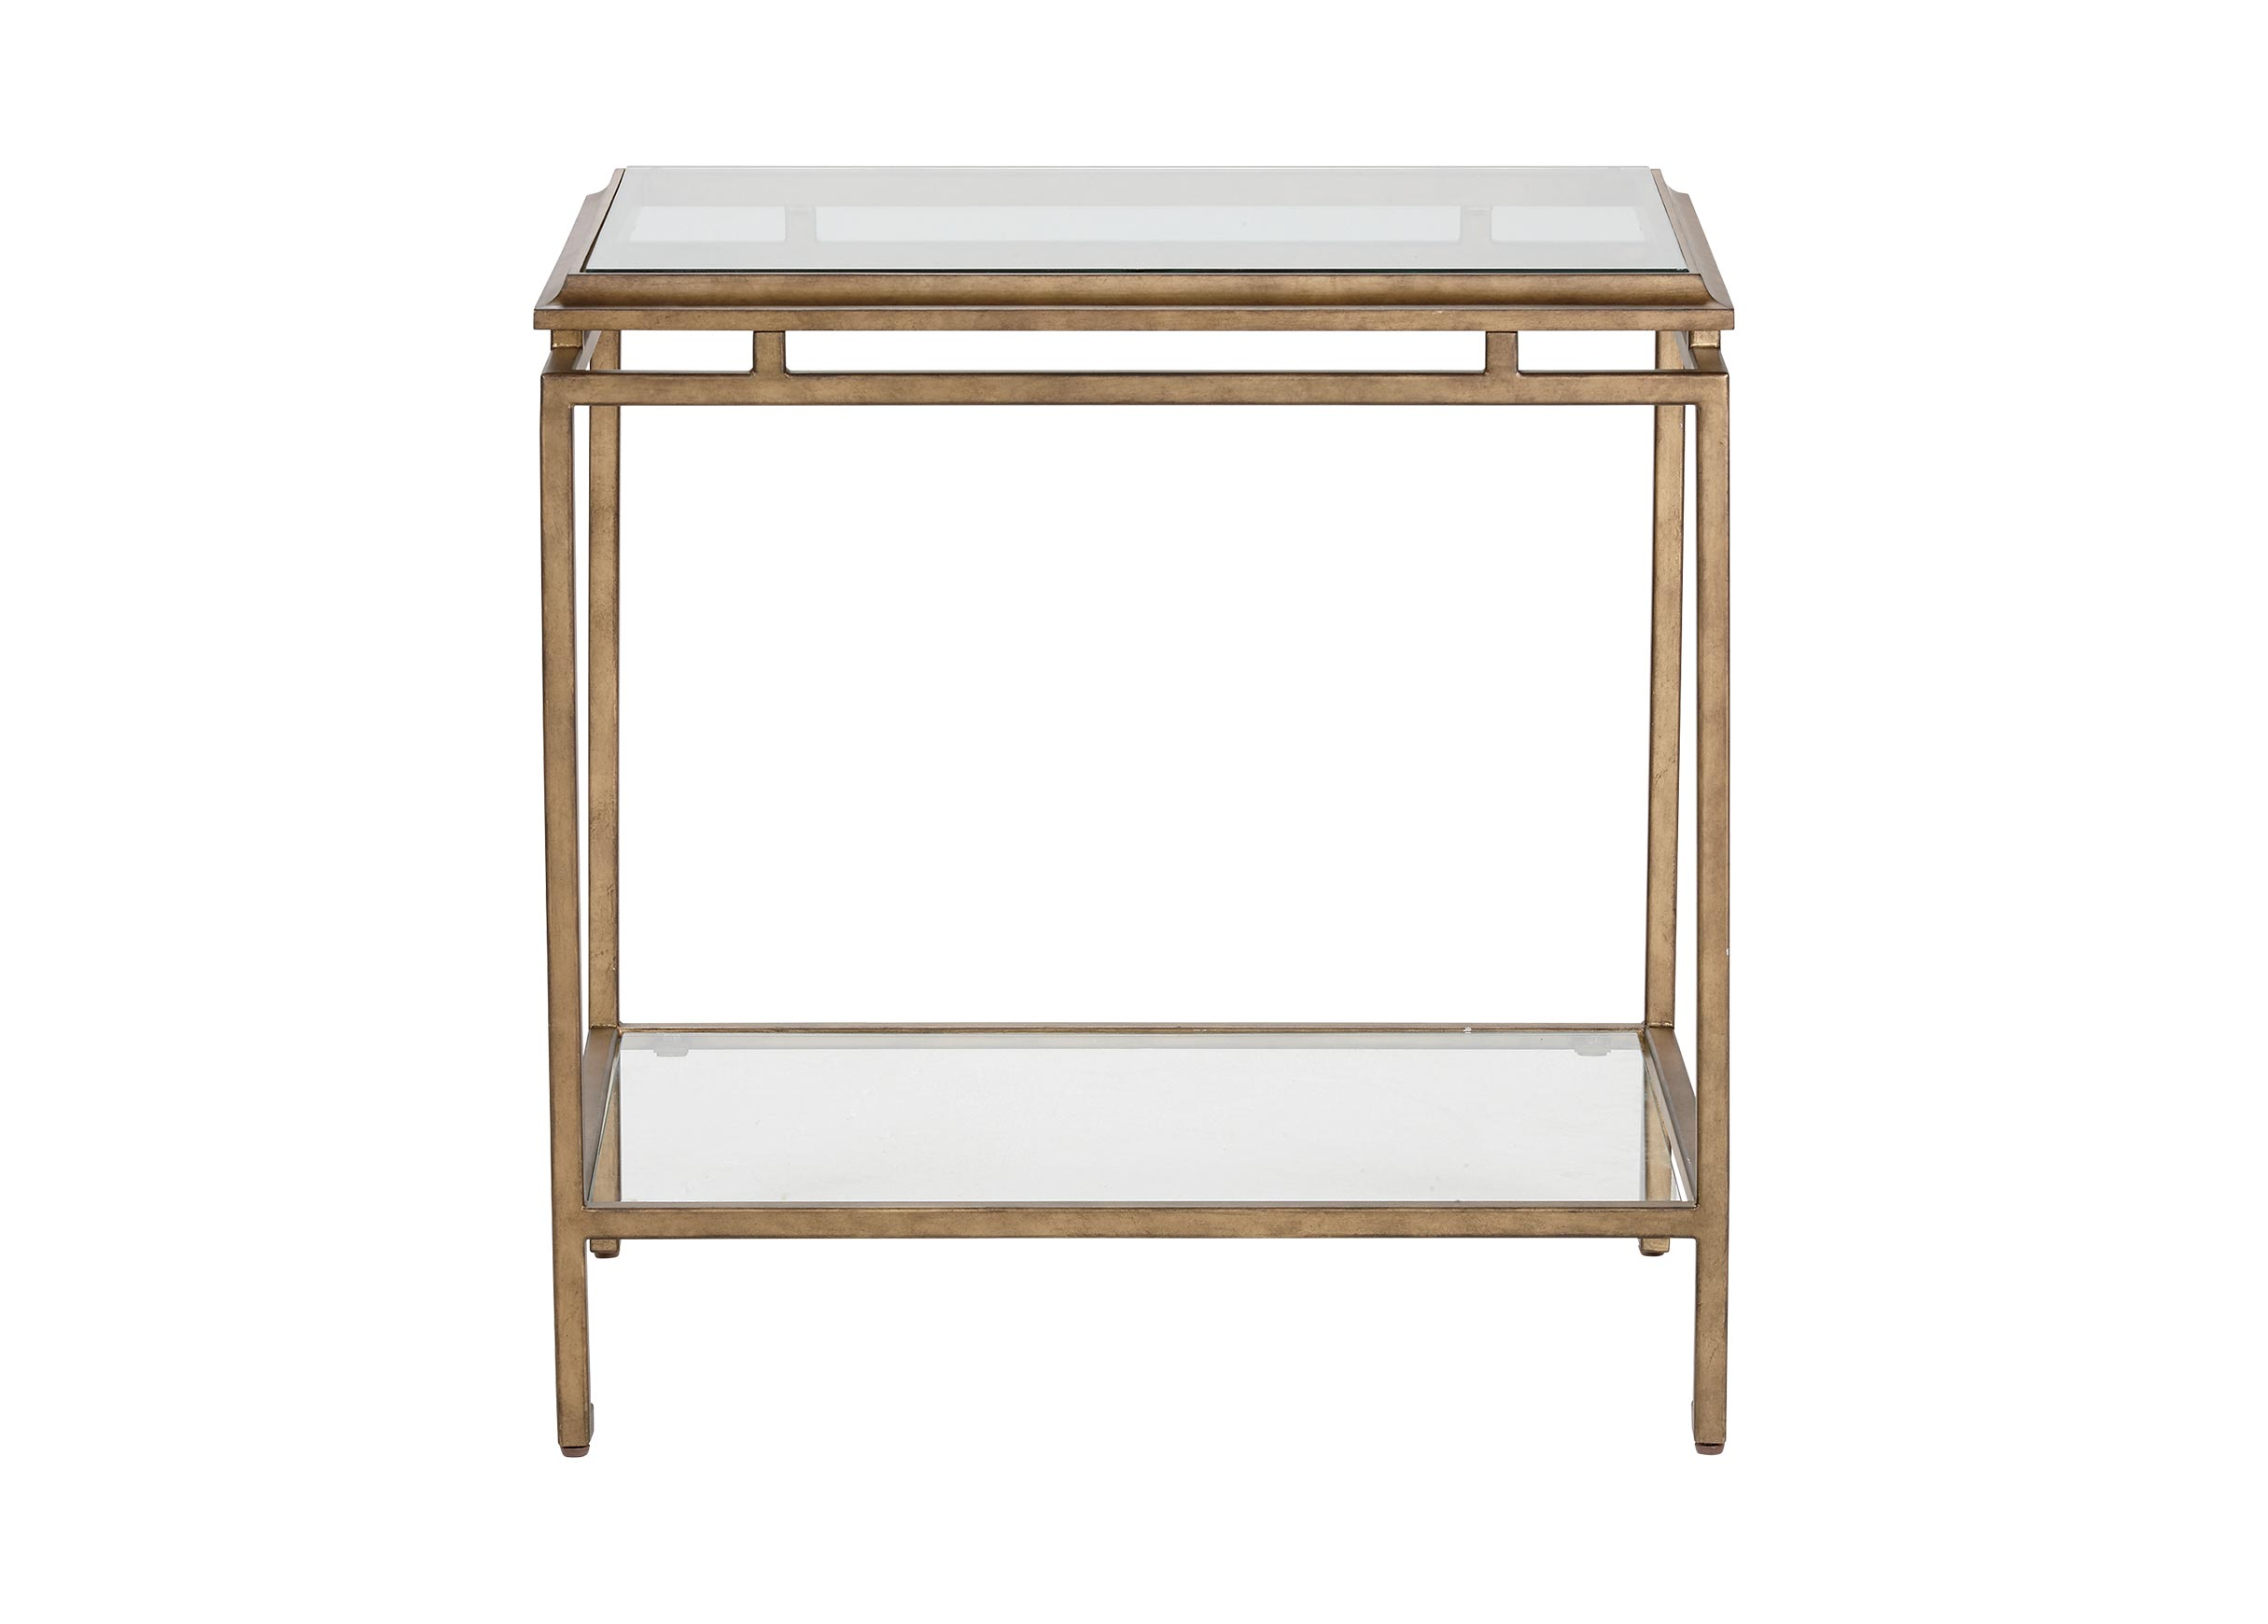 side tables accent ethan allen tablecloth for inch round table quick ship tall nightstands nesting wood bistro set modern outdoor chairs rectangle corner ikea decorative pieces